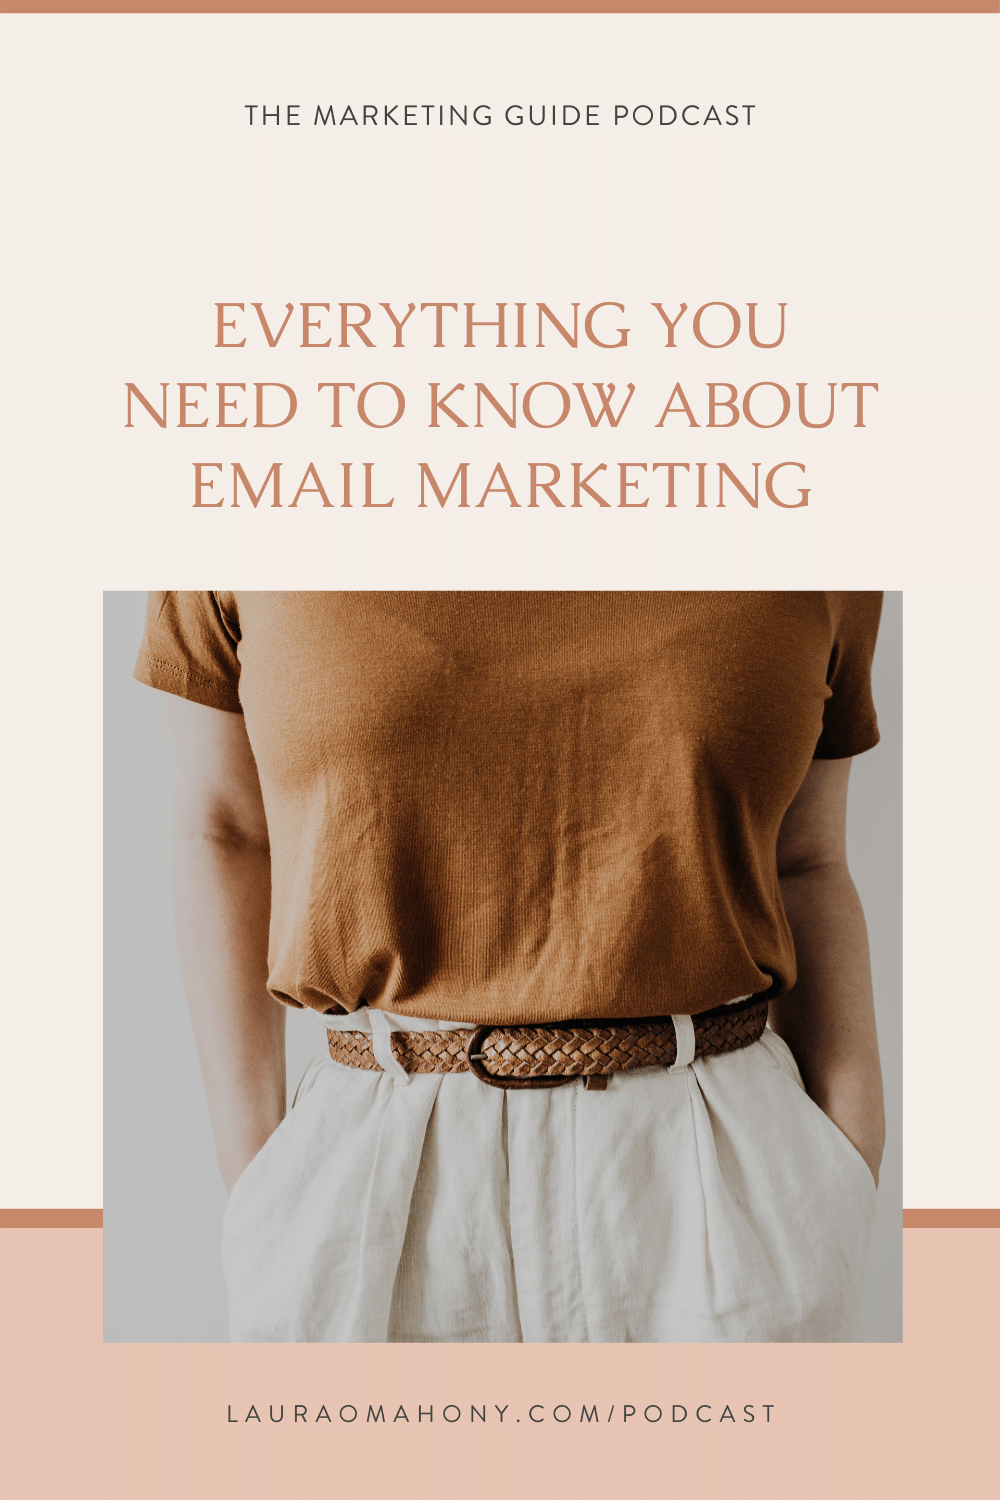 Everything you need to know to get started with Email Marketing